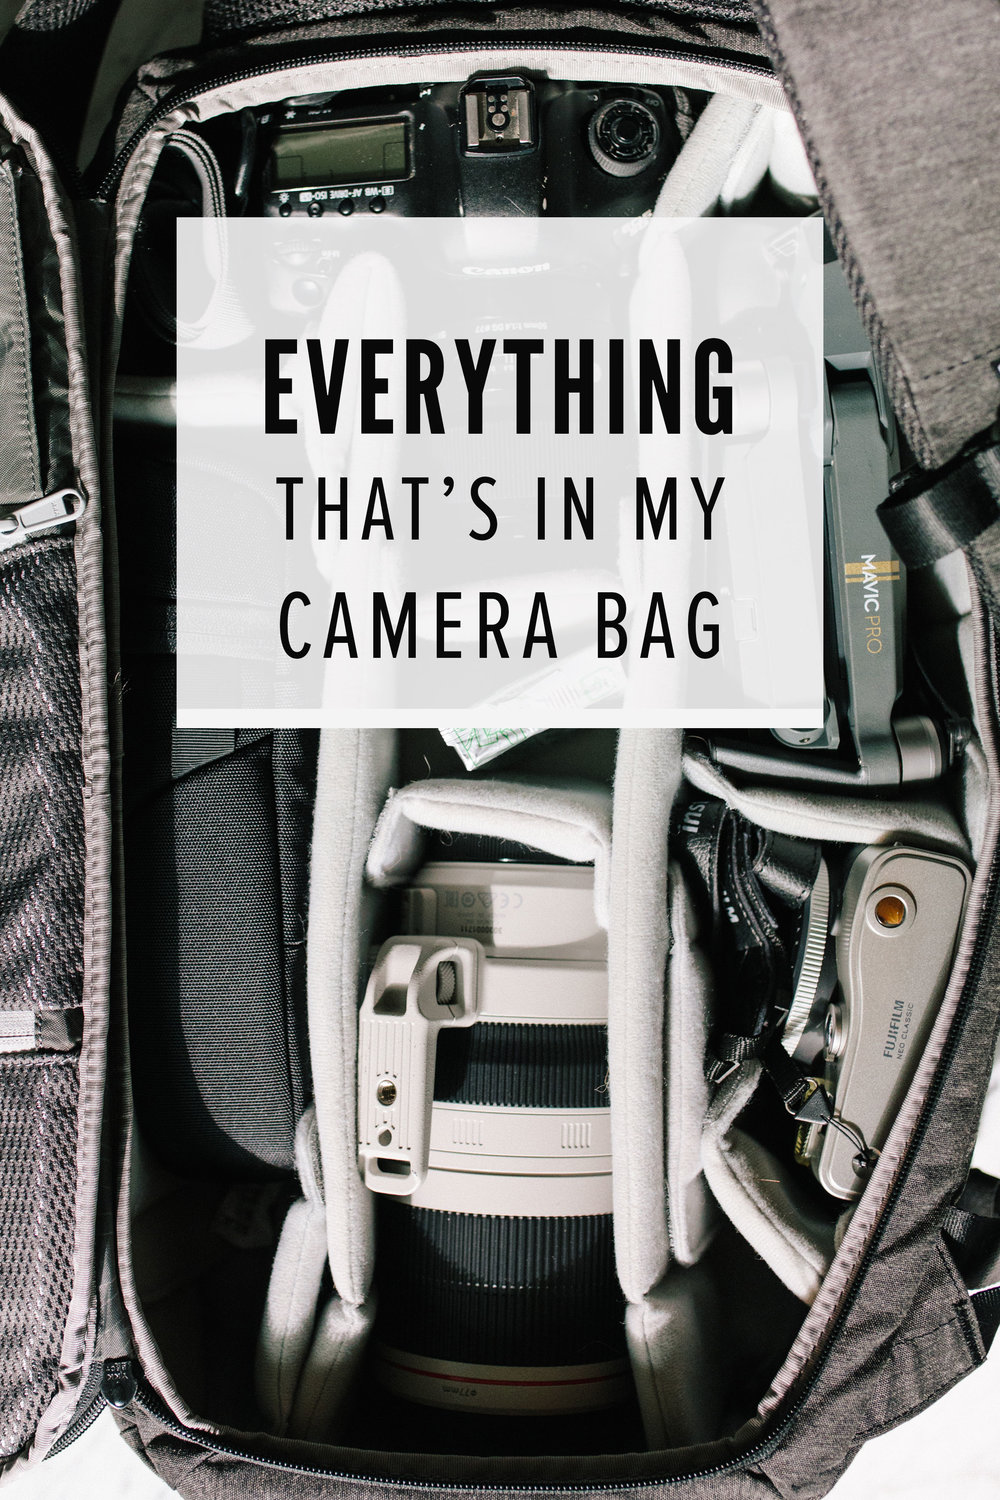 Everything in camera bag